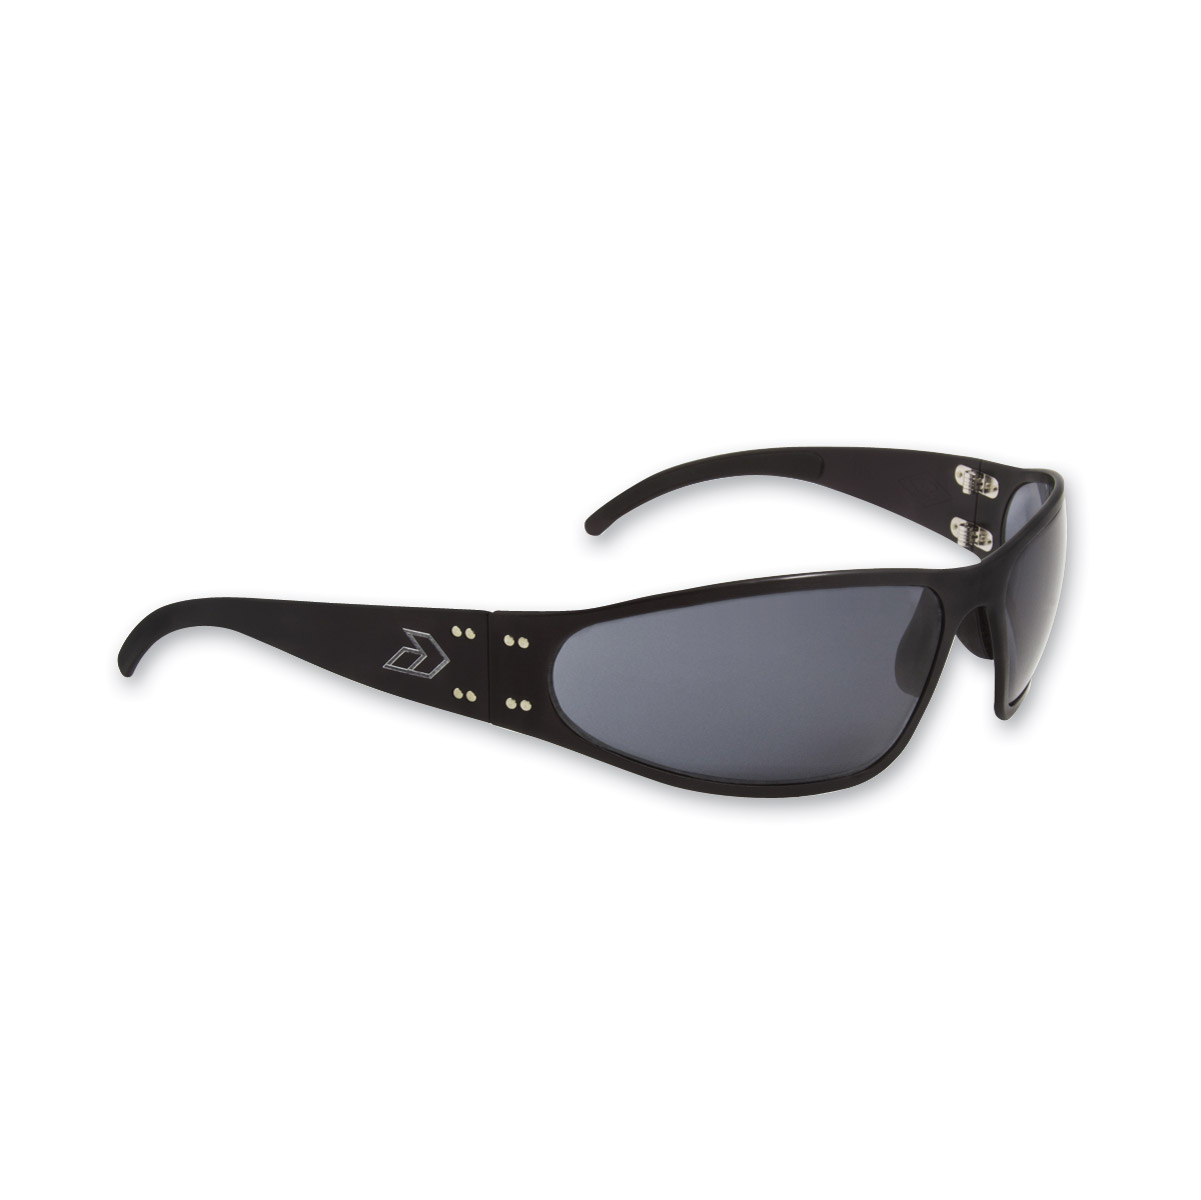 Gatorz Wraptor Black Frame with Gray Polarized Lens Sunglasses